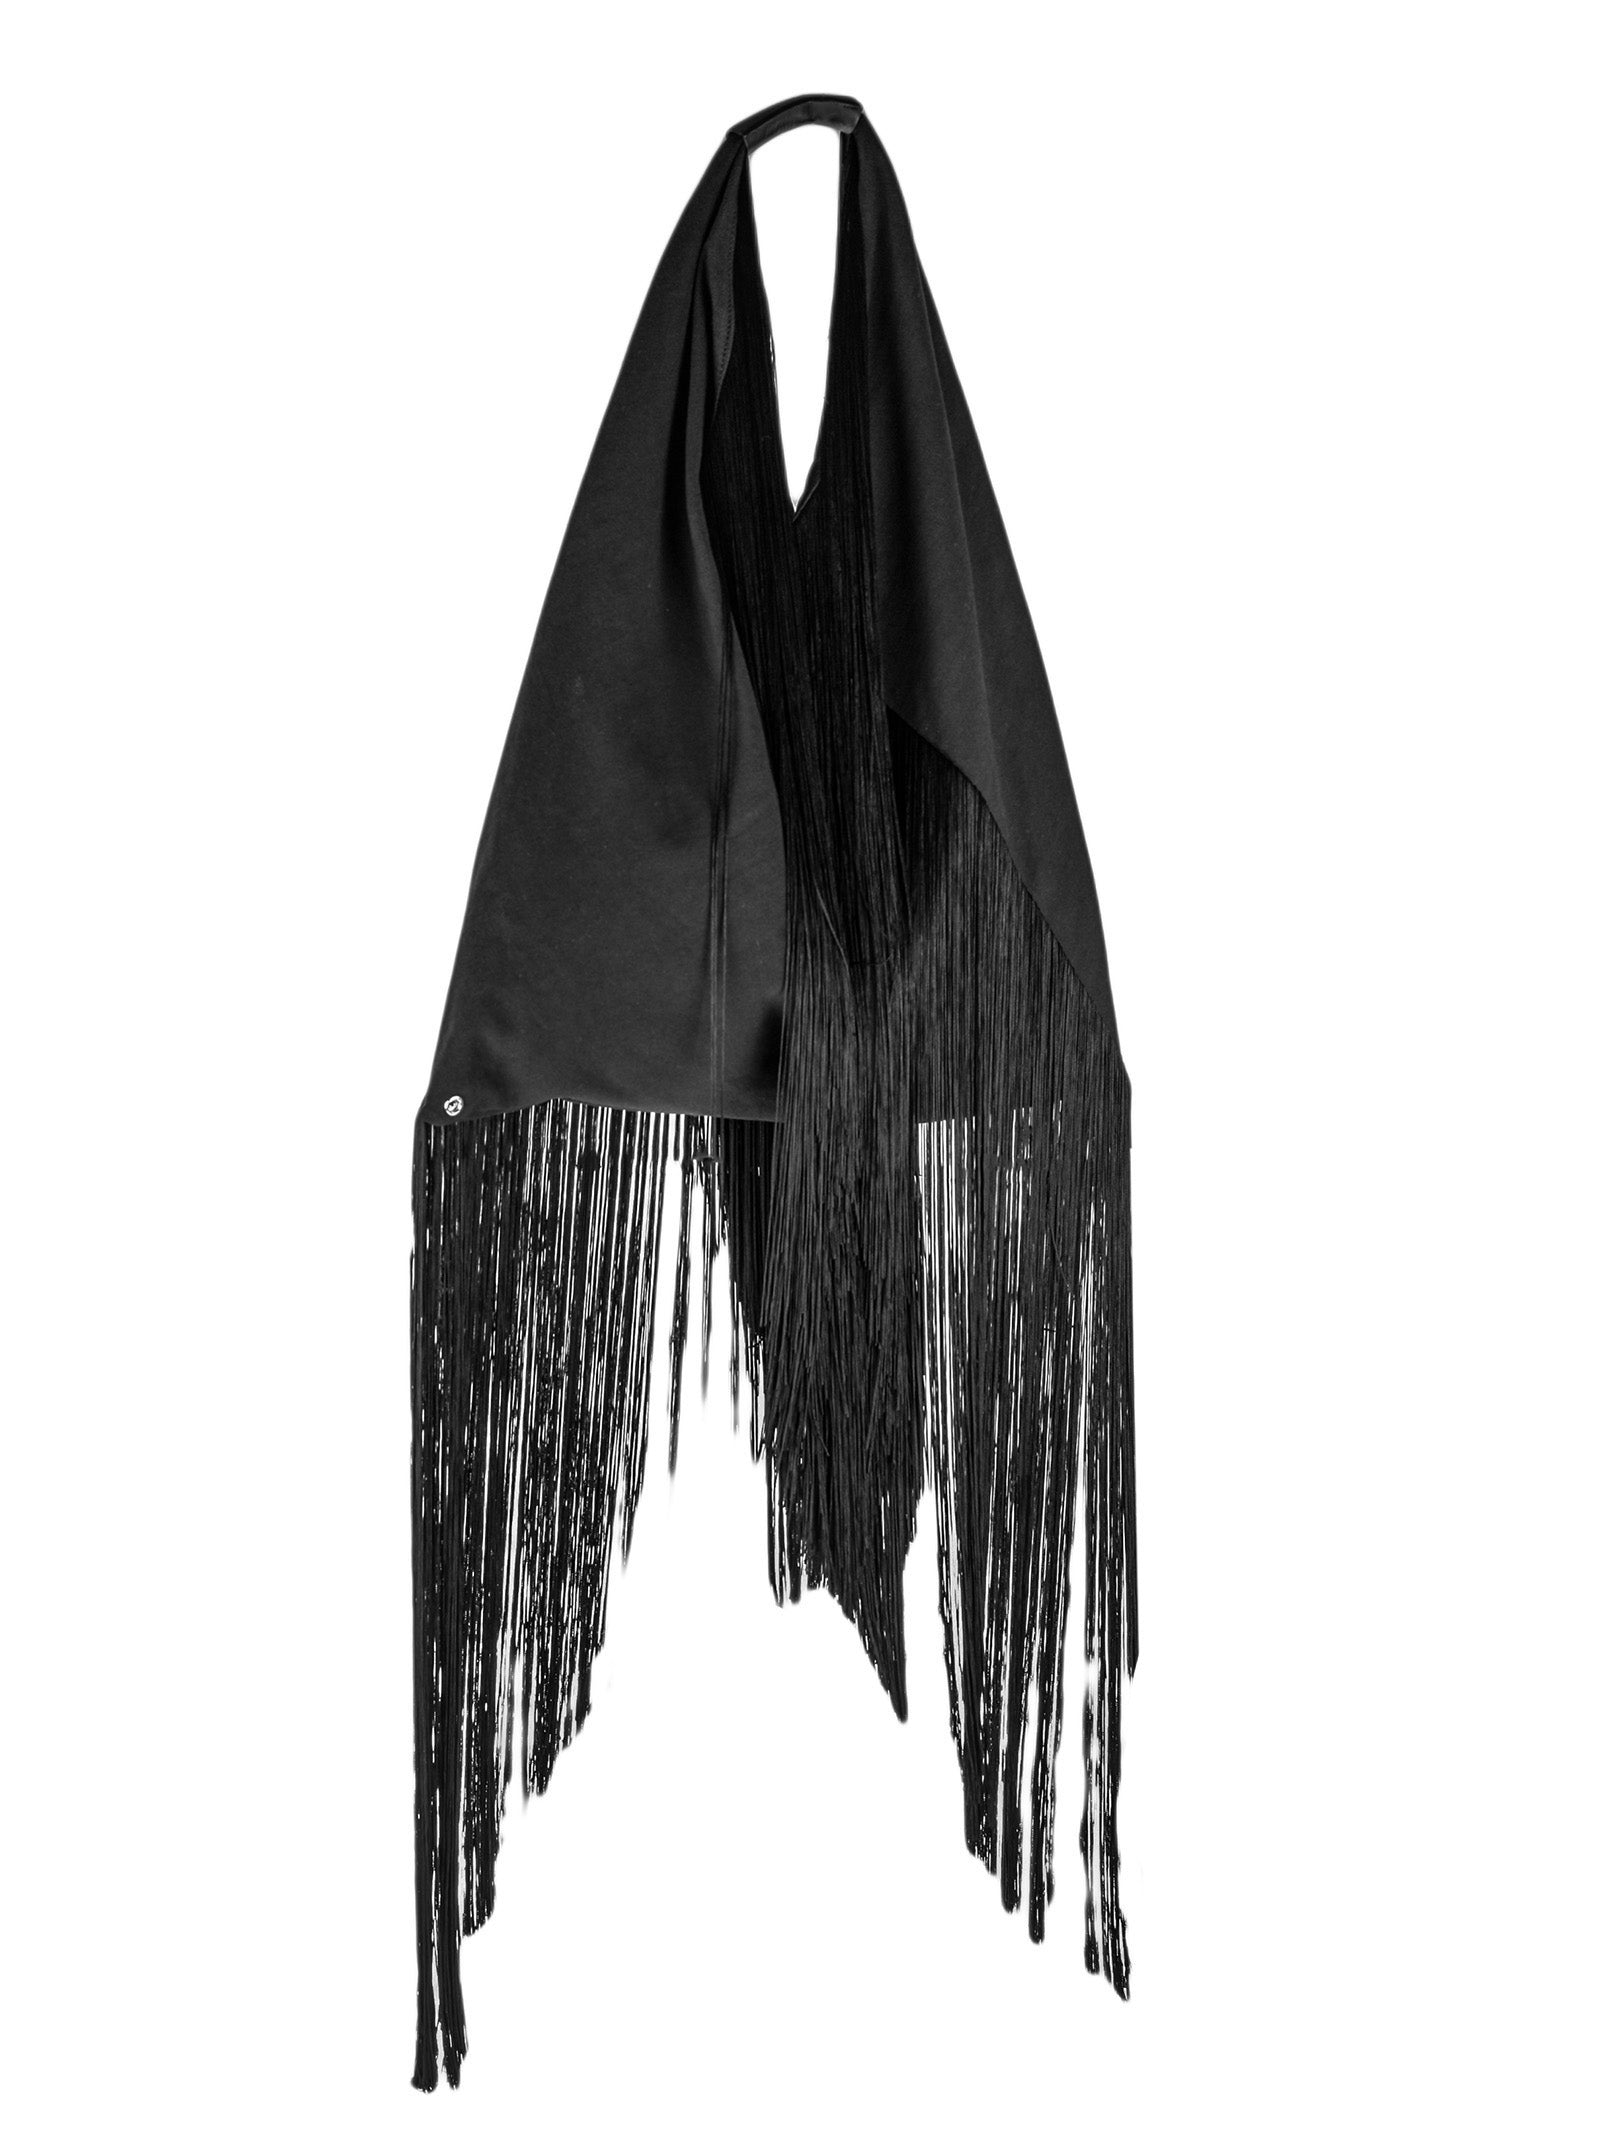 MM6 Maison Margiela Fringe Tote Bag